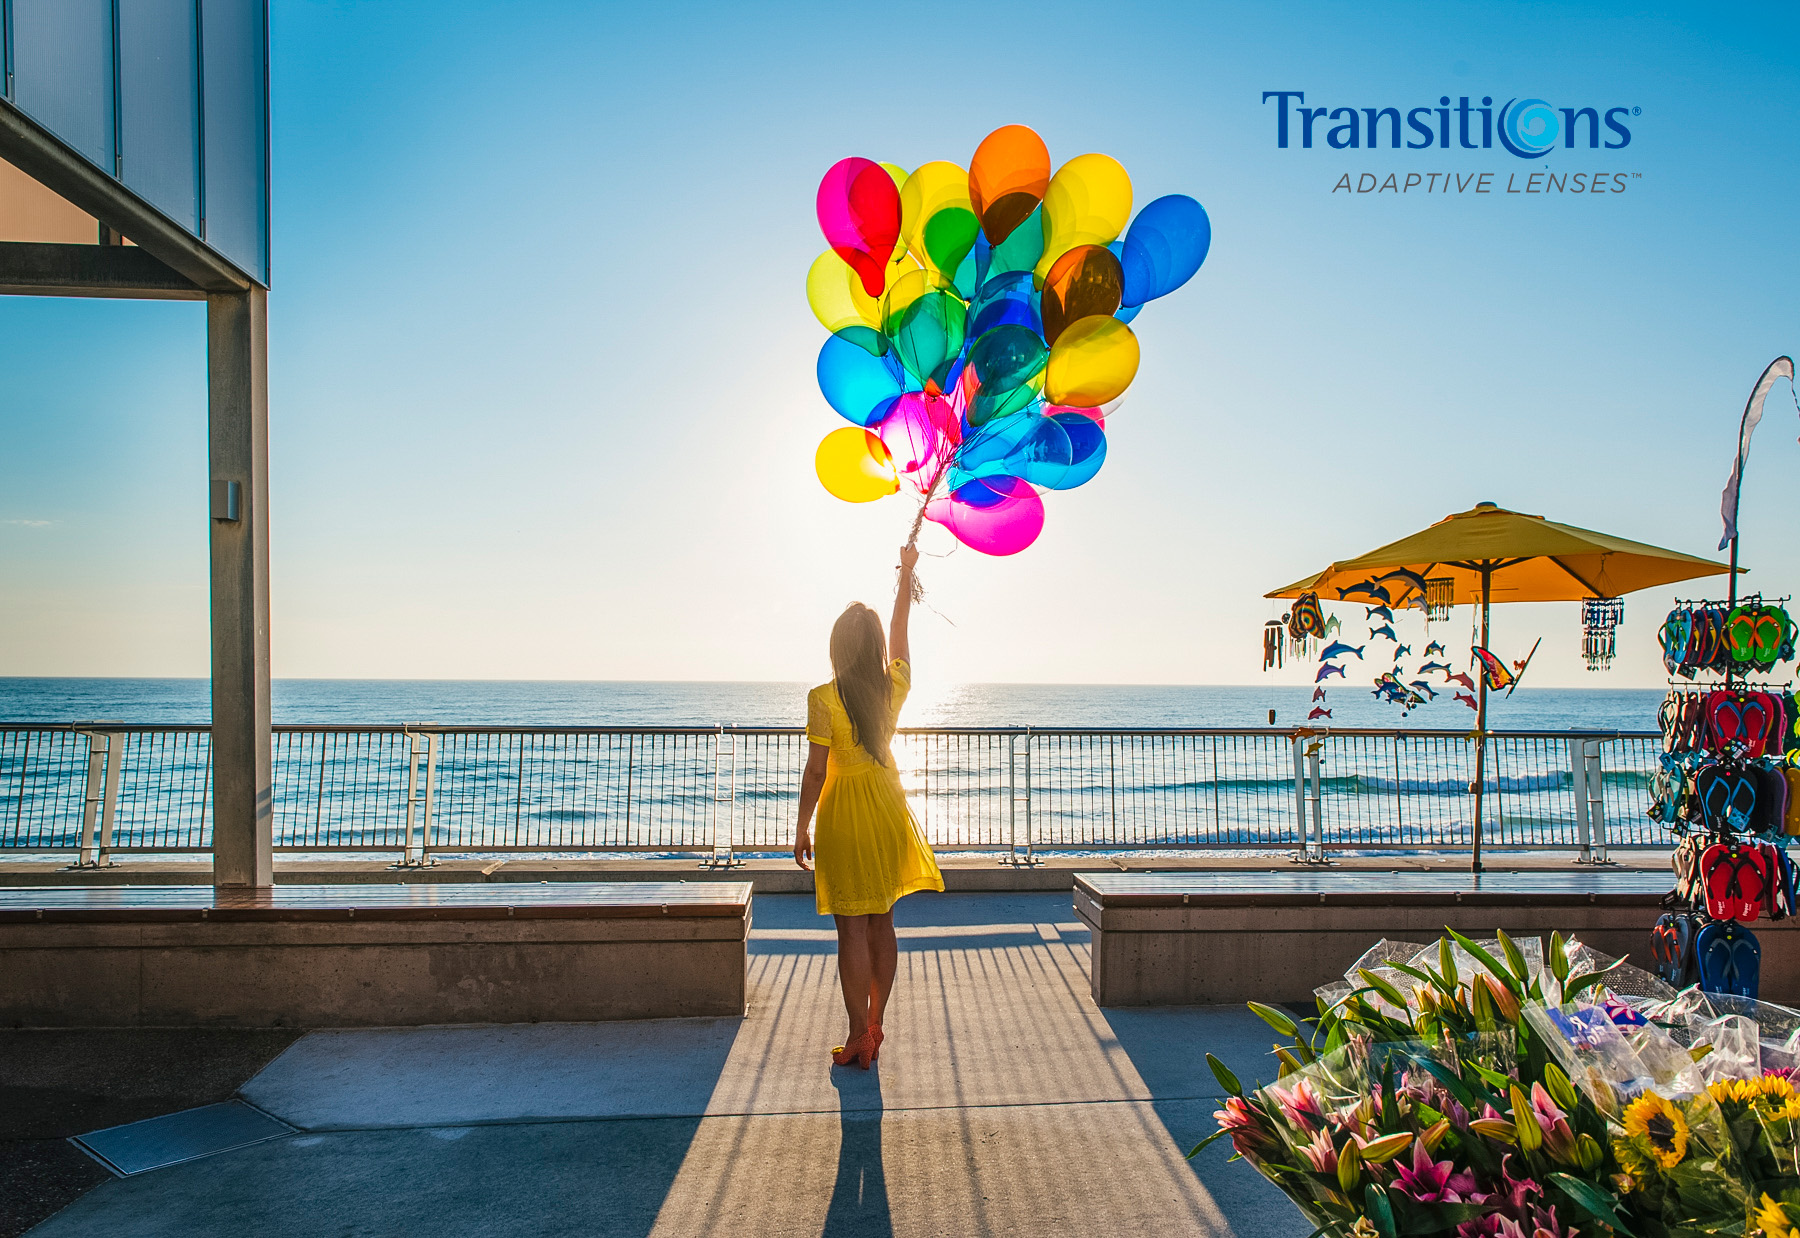 Transitions_Balloons-5868